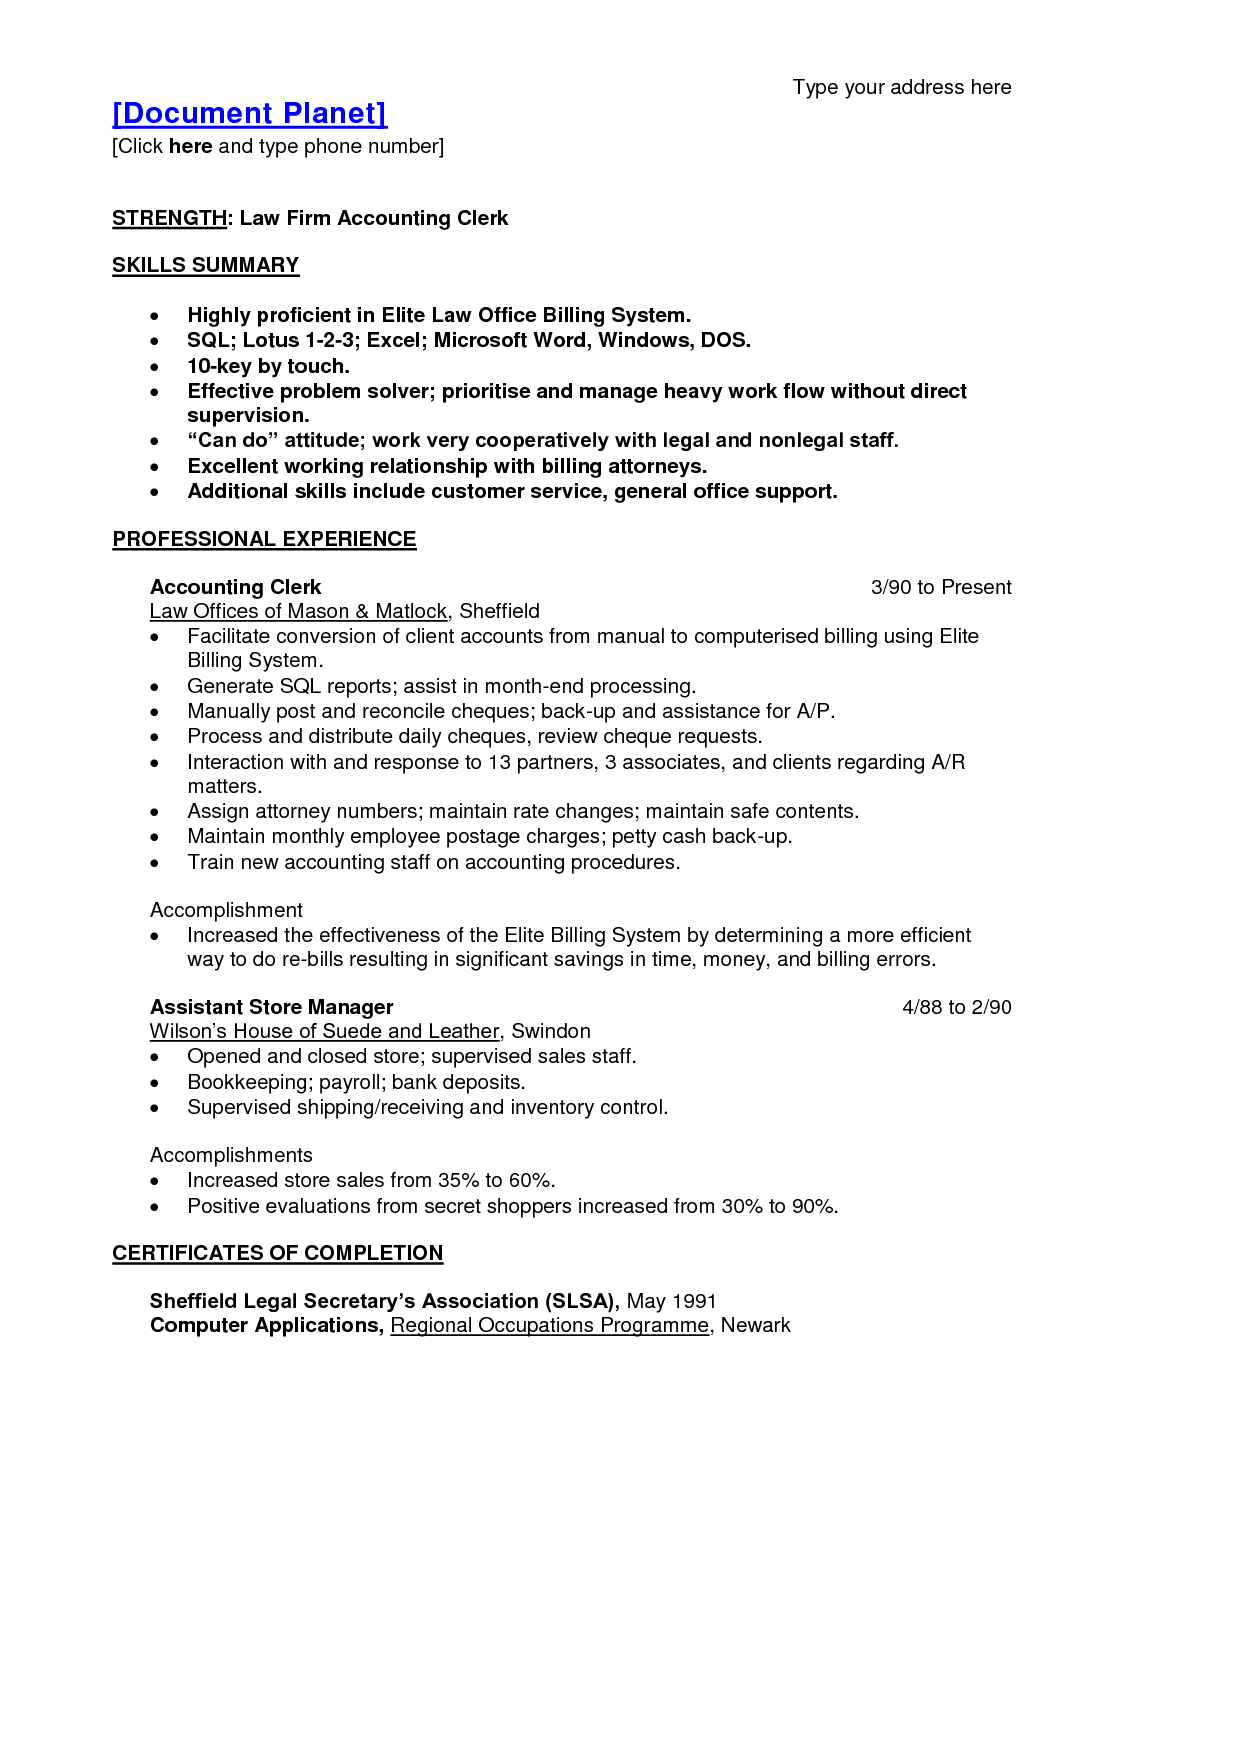 resume sample shipping receiving clerk within accountant example templat warehouse - Arehouse Resume Sample